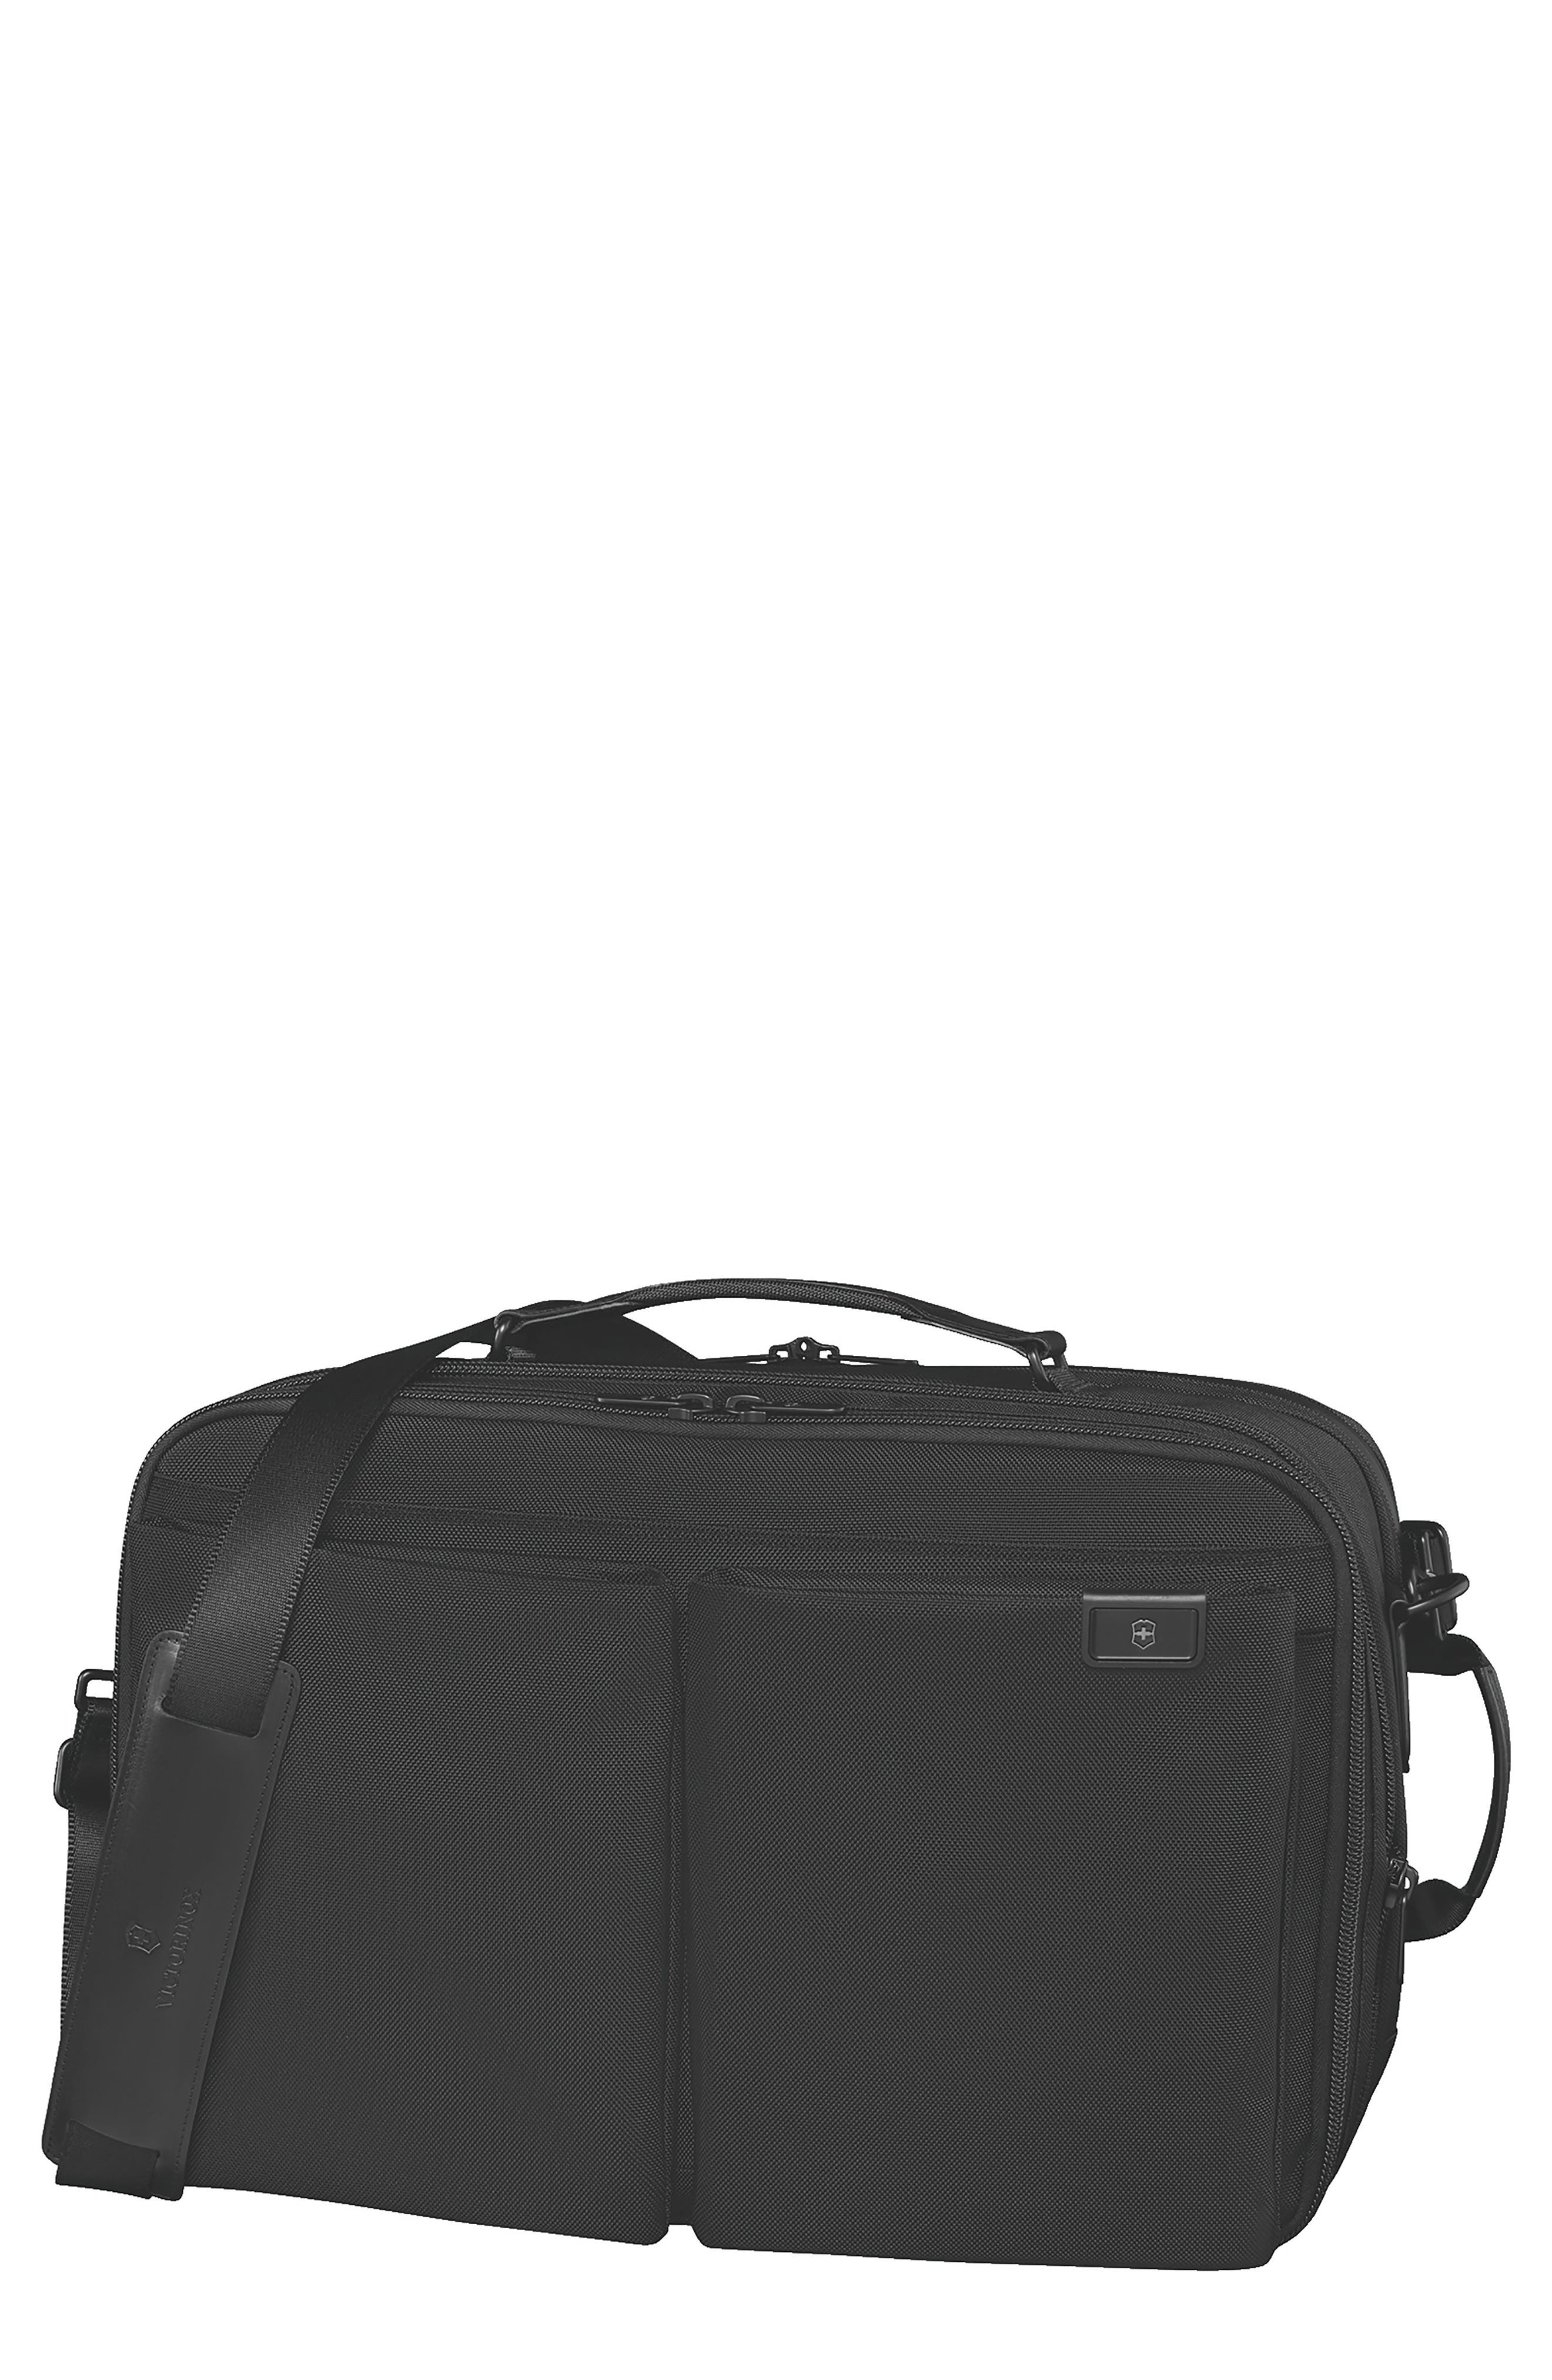 Main Image - Victorinox Swiss Army® Lexicon 2.0 Convertible Backpack